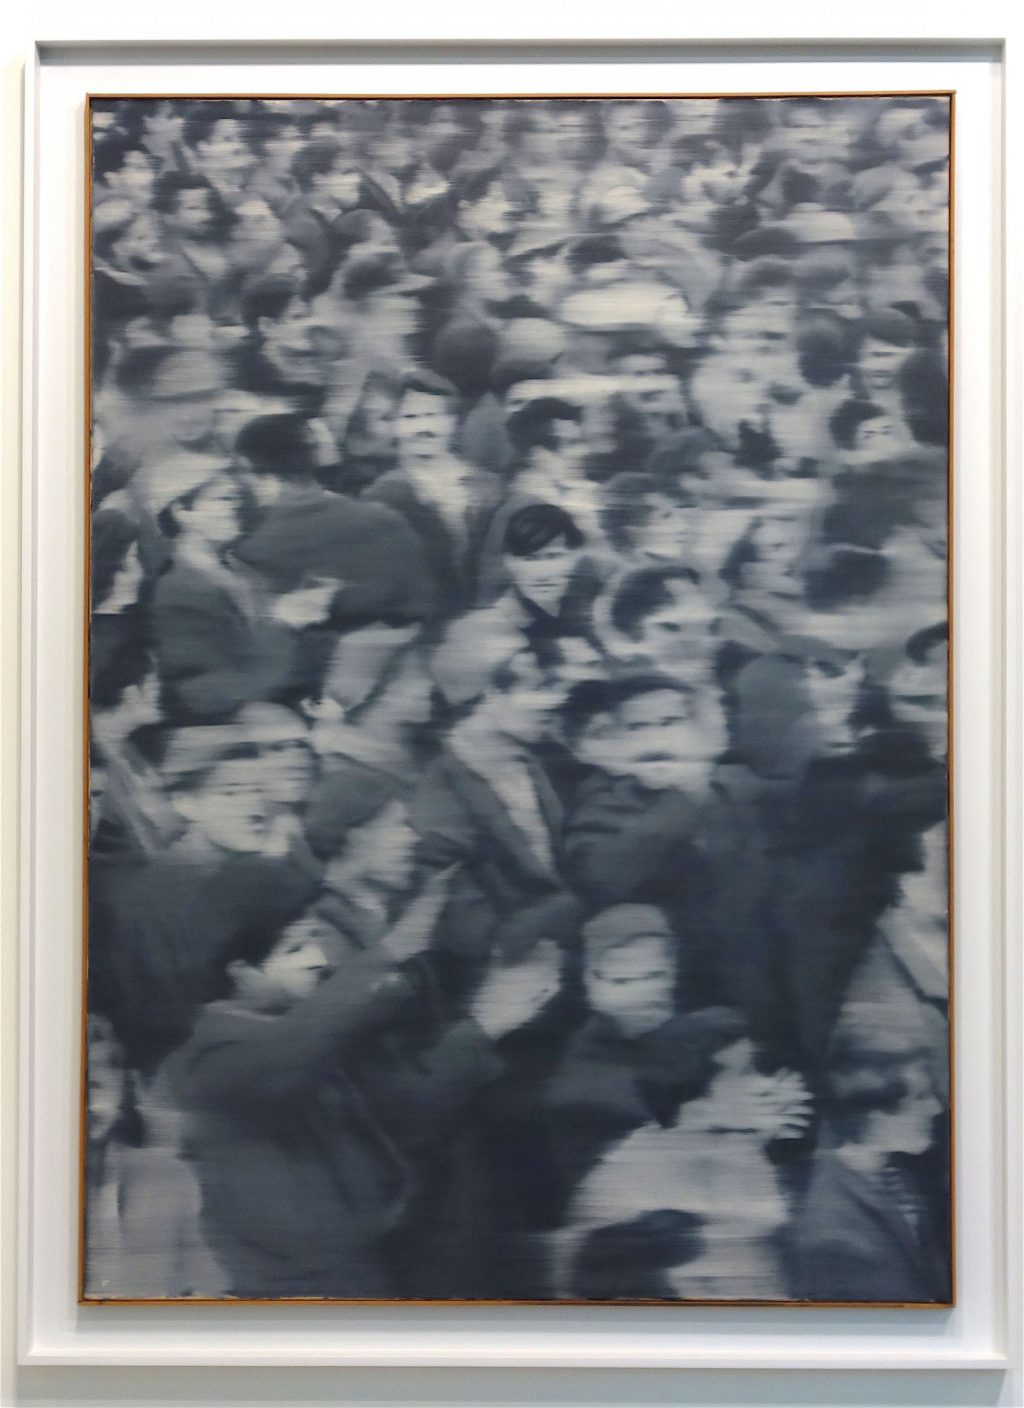 "Gerhard Richter ""Versammlung (Gathering)"" 1966, Oil on canvas, 160 x 114.5 cm sold for US$20m, a record for the gallery at ART BASEL (Art Newspaper)"